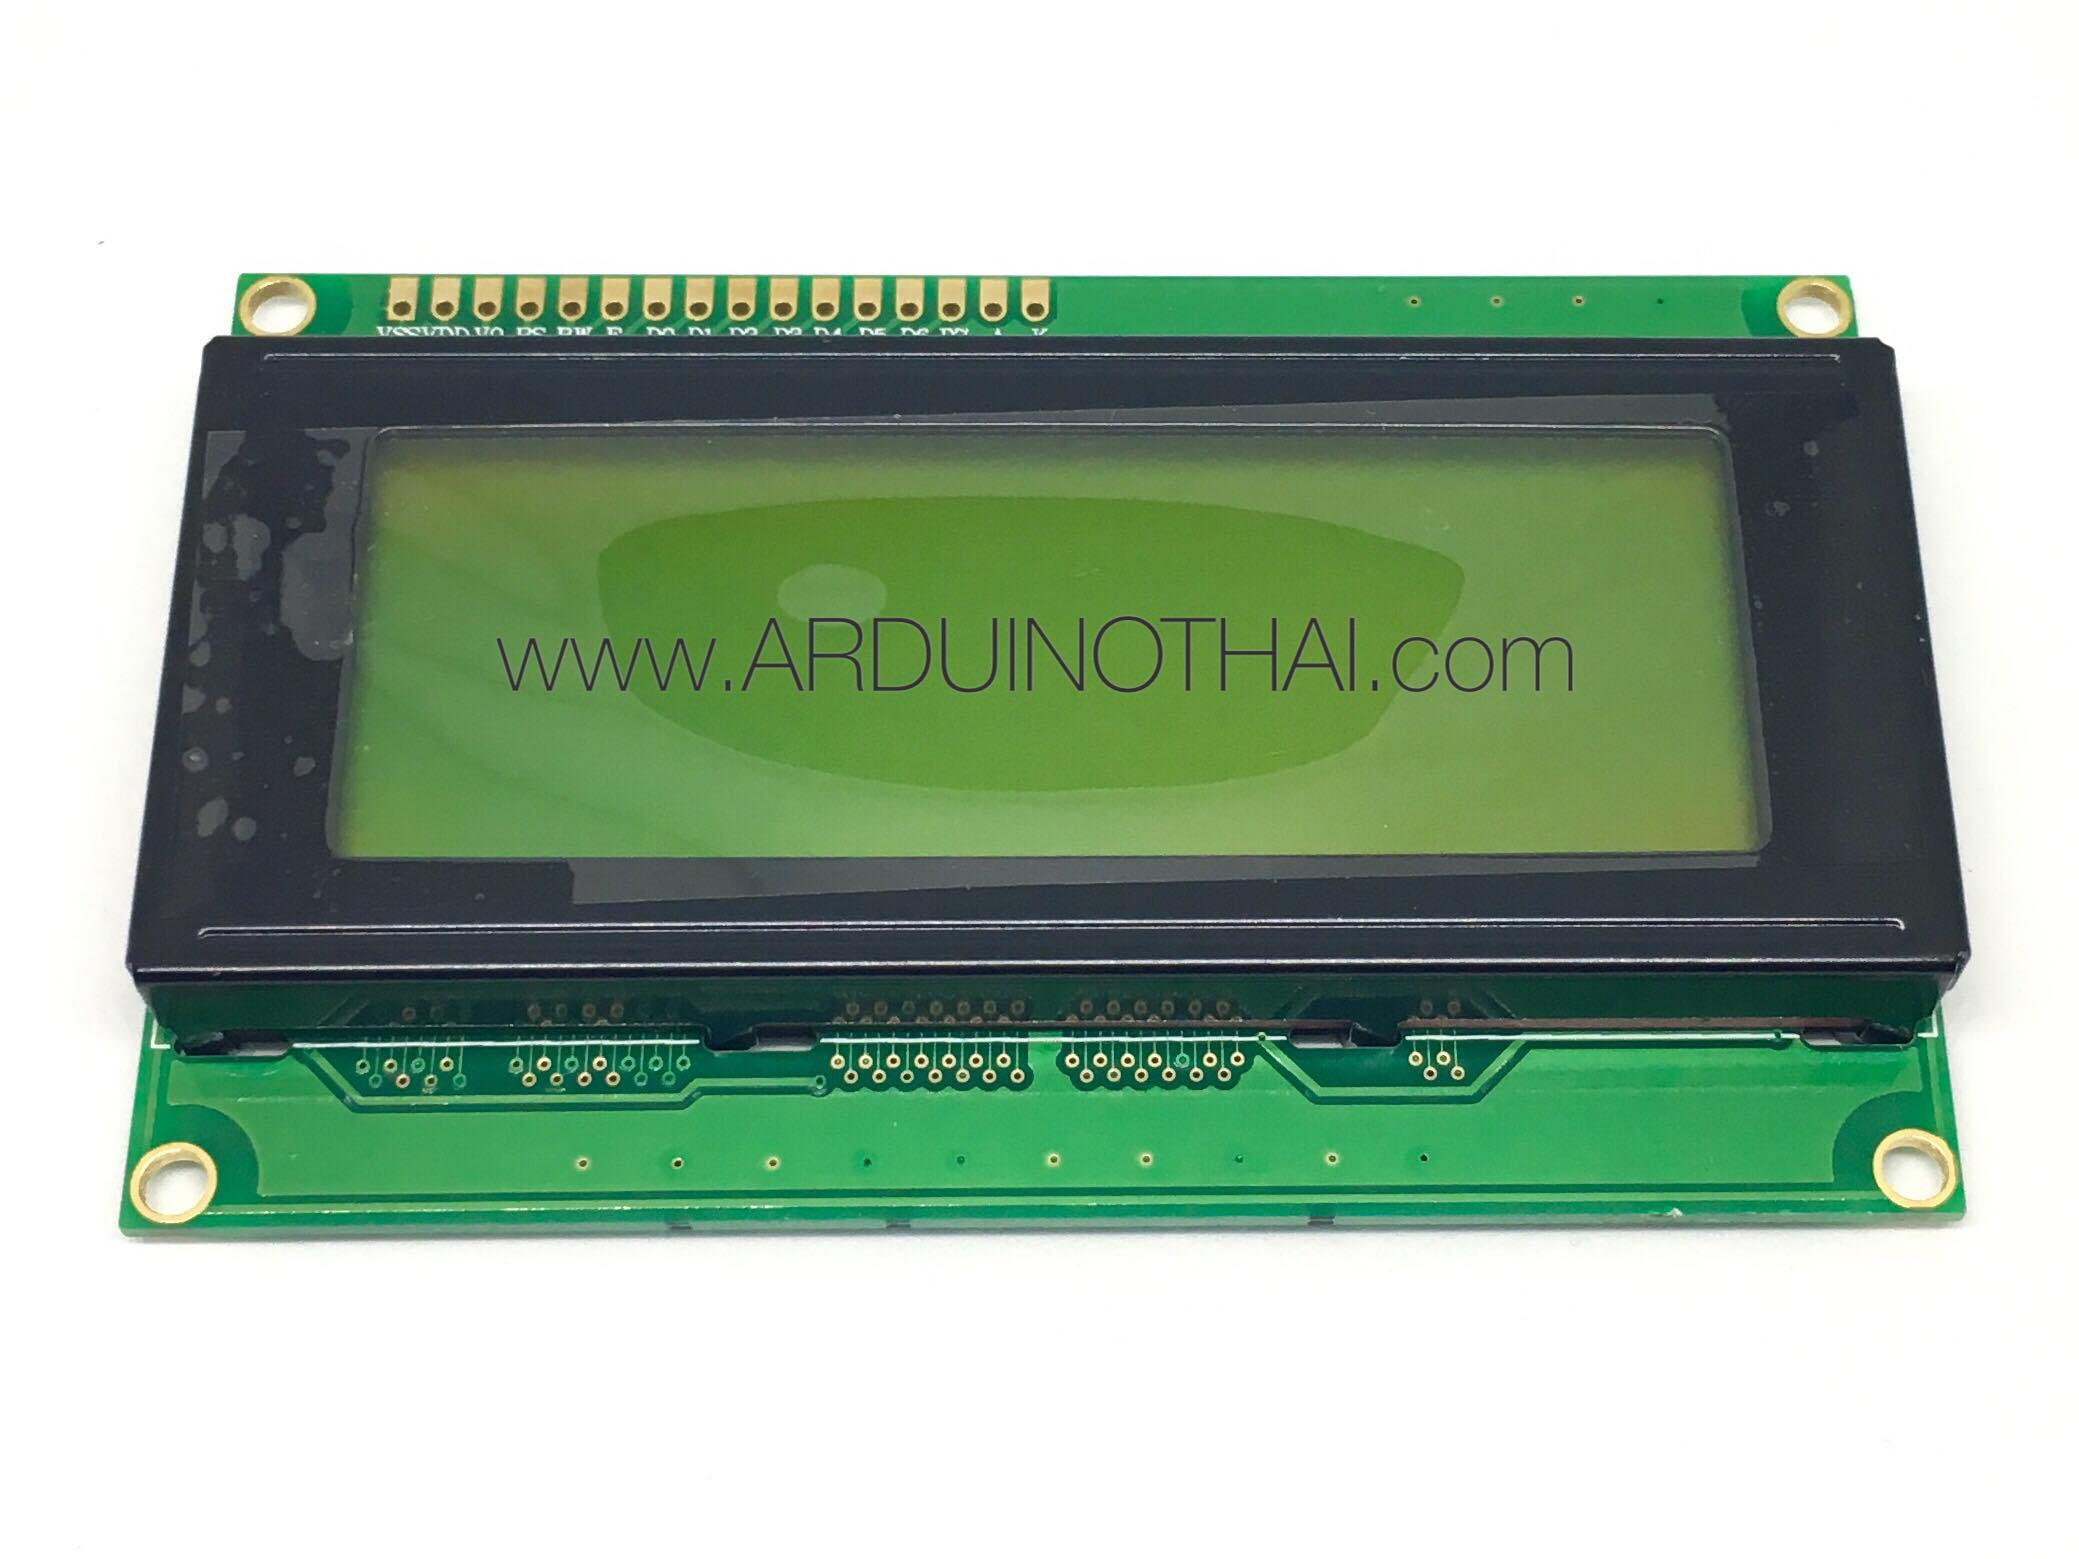 20X4 Character LCD Module Display (Yellow Backlight)